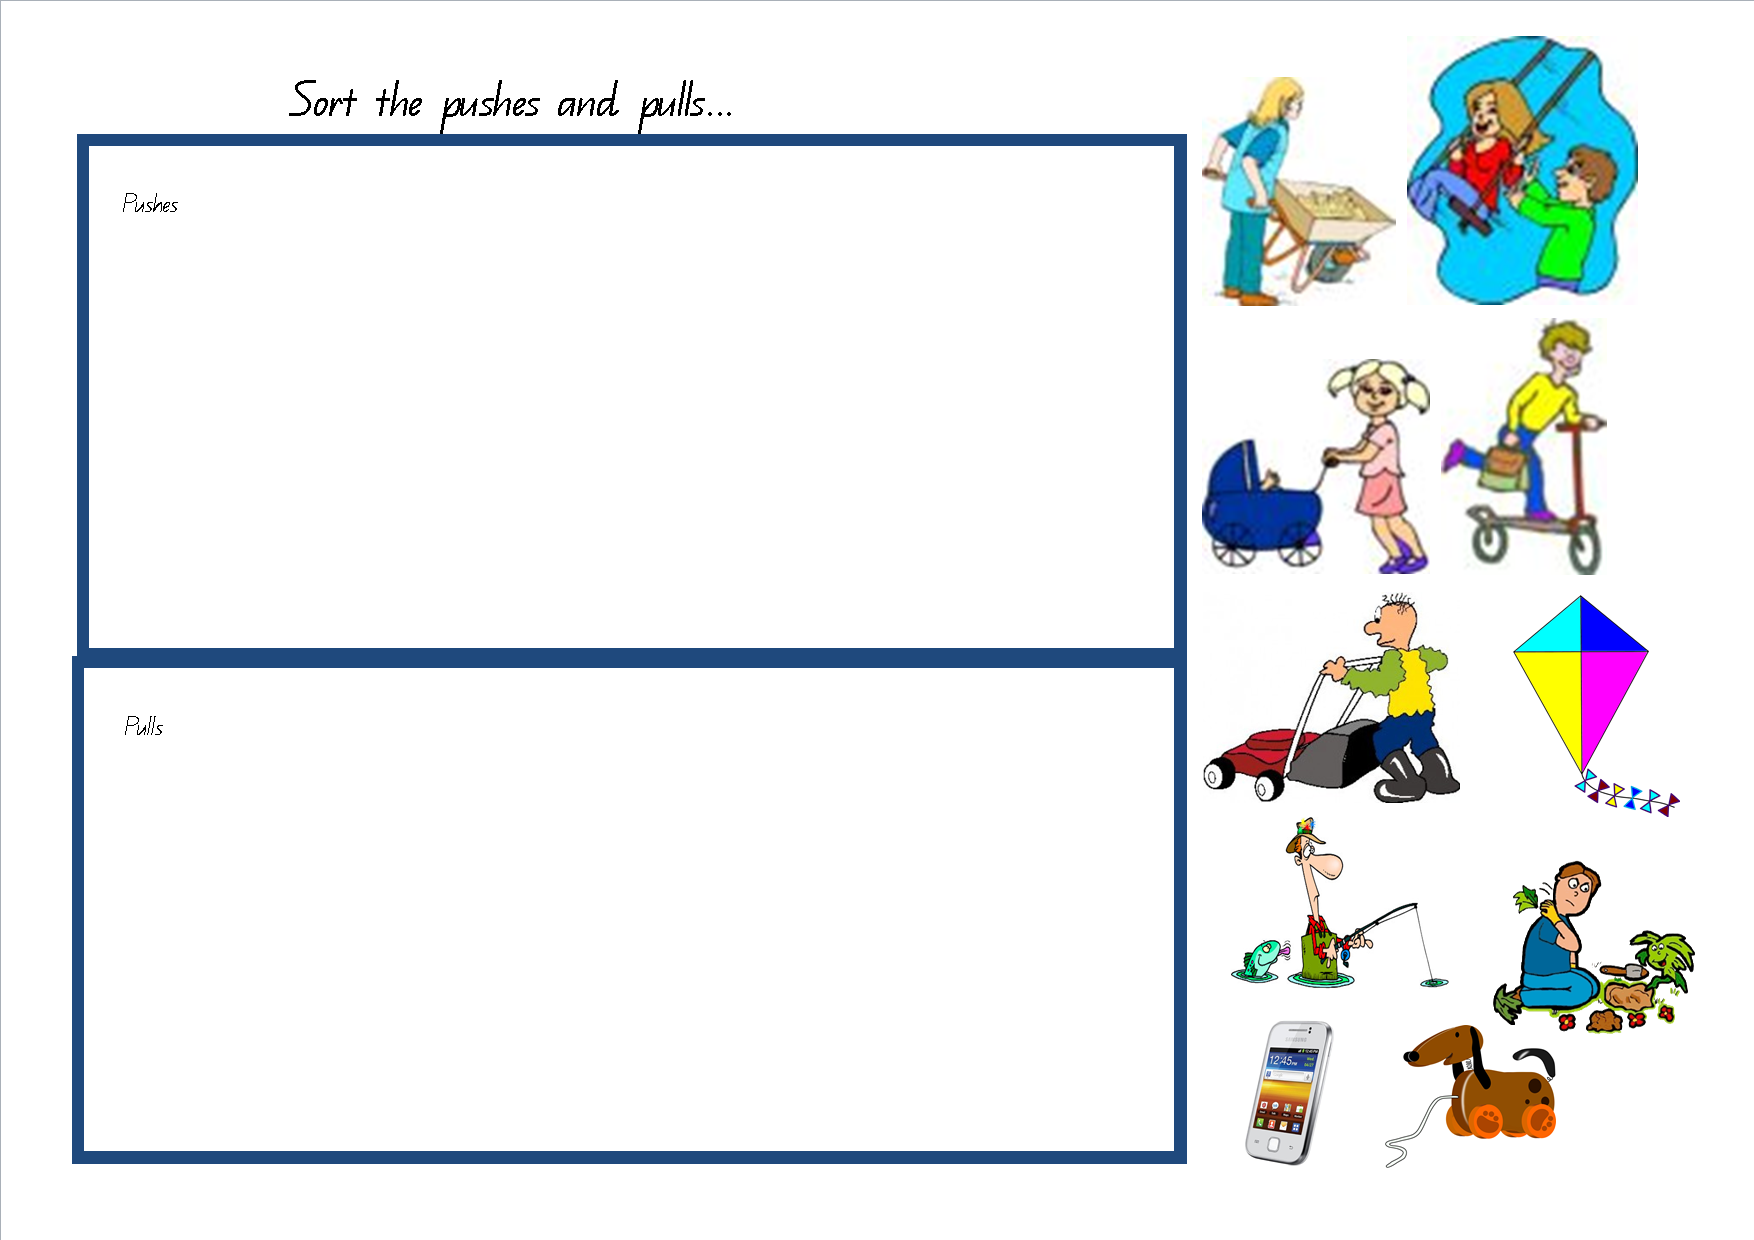 This Is Just A Simple But Fun Sorting Activity To